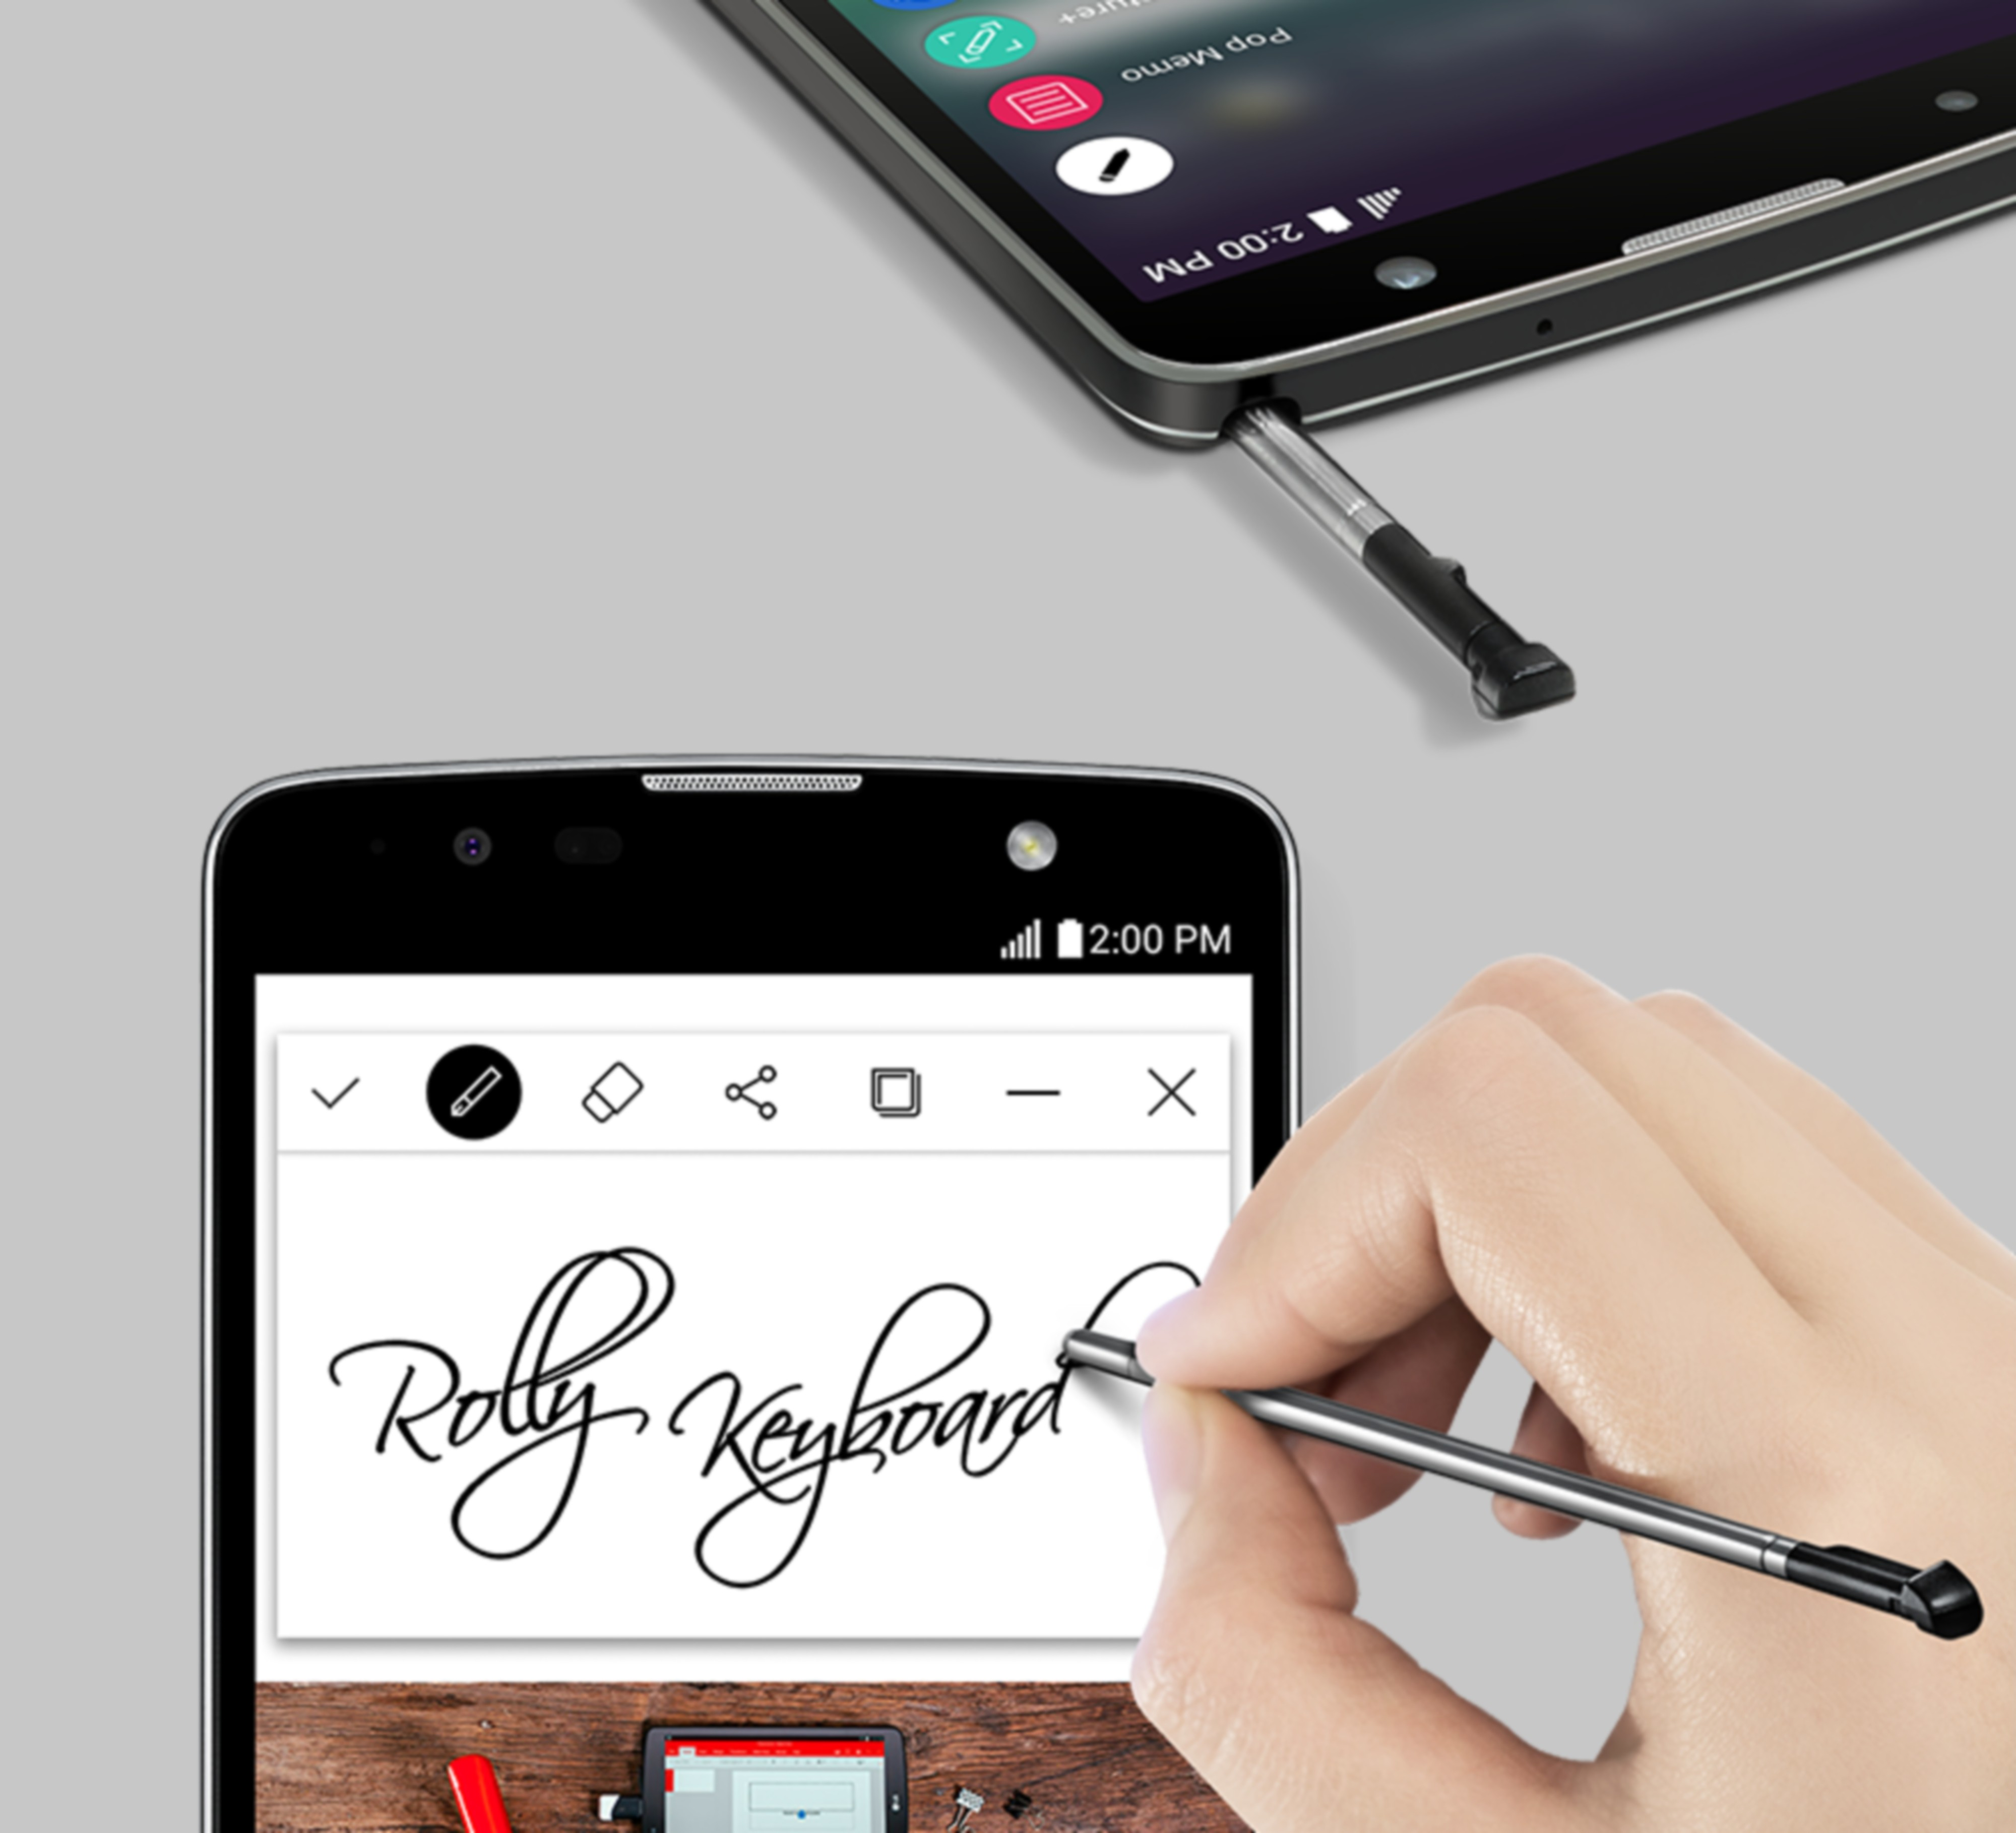 A person using the stylus to write 'Rolly Keyboard' in cursive on the LG Stylus 2 Plus